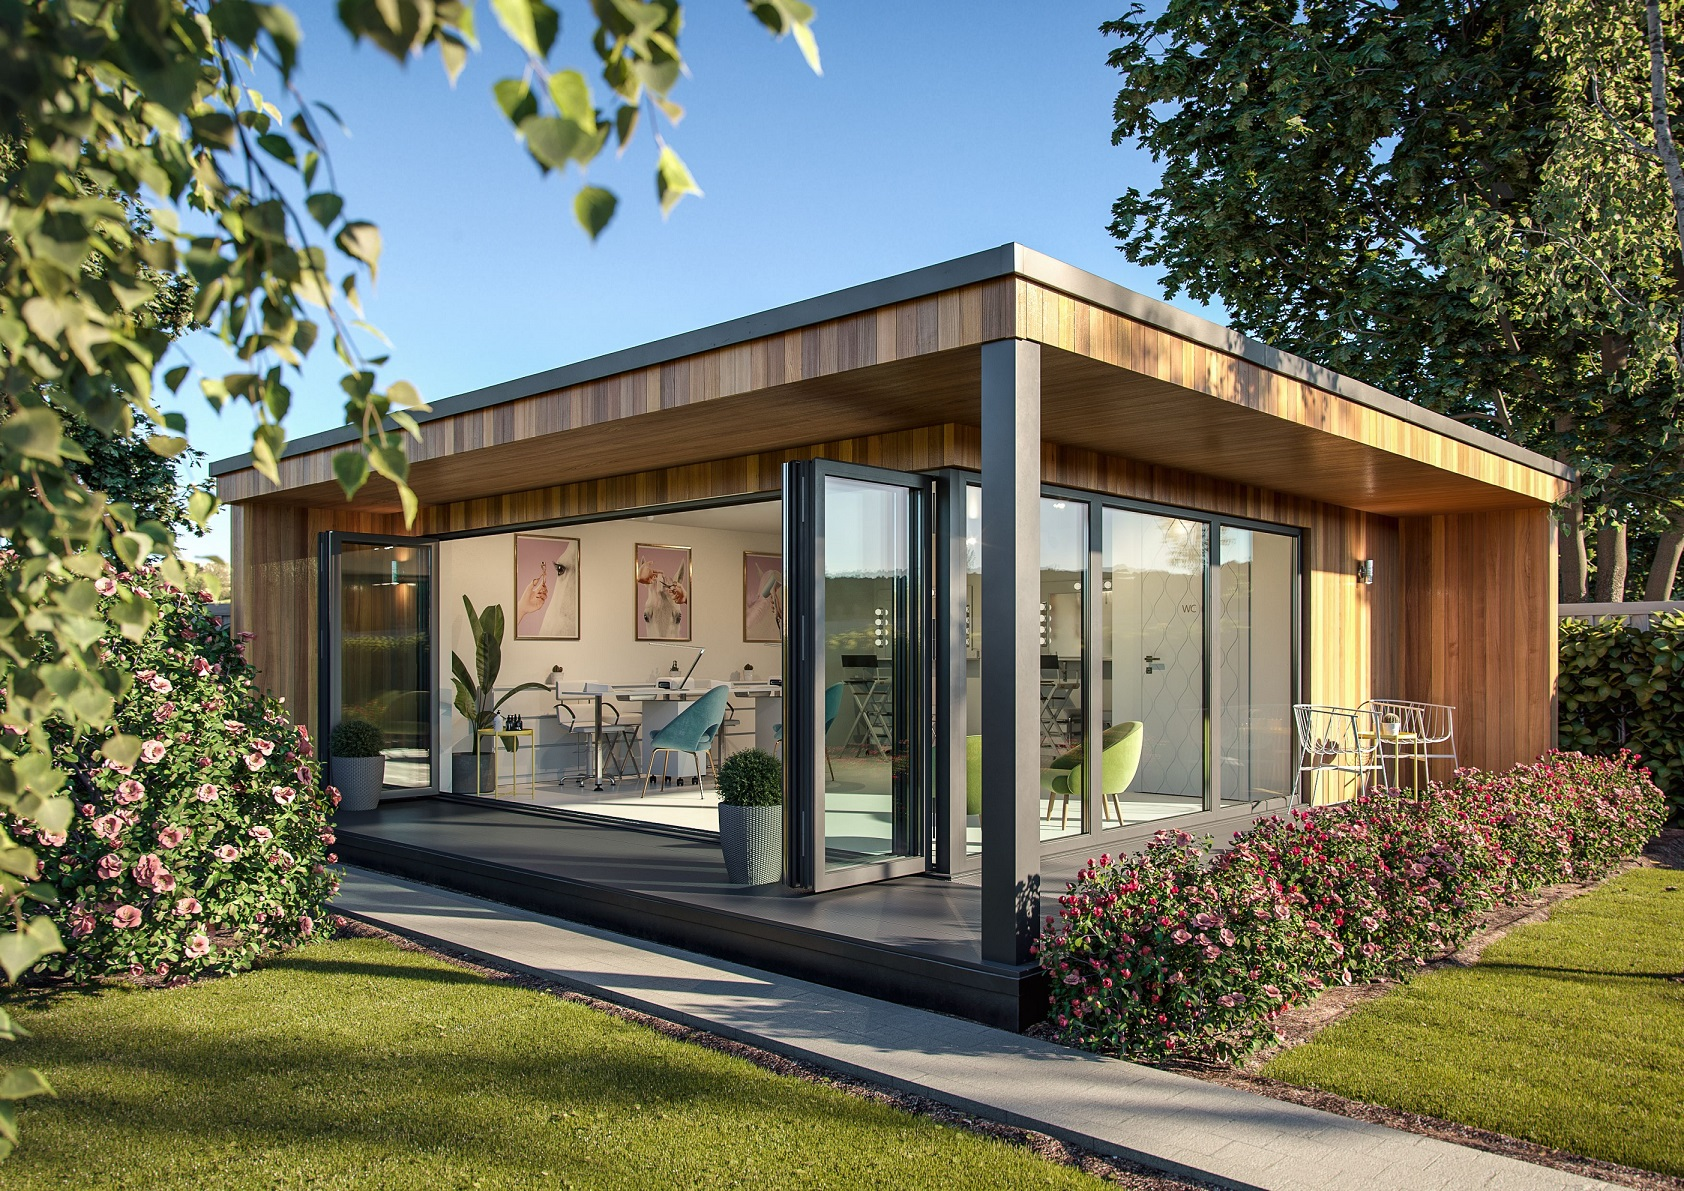 Taggart Homes begins construction on innovative new outdoor multifunctional work pods